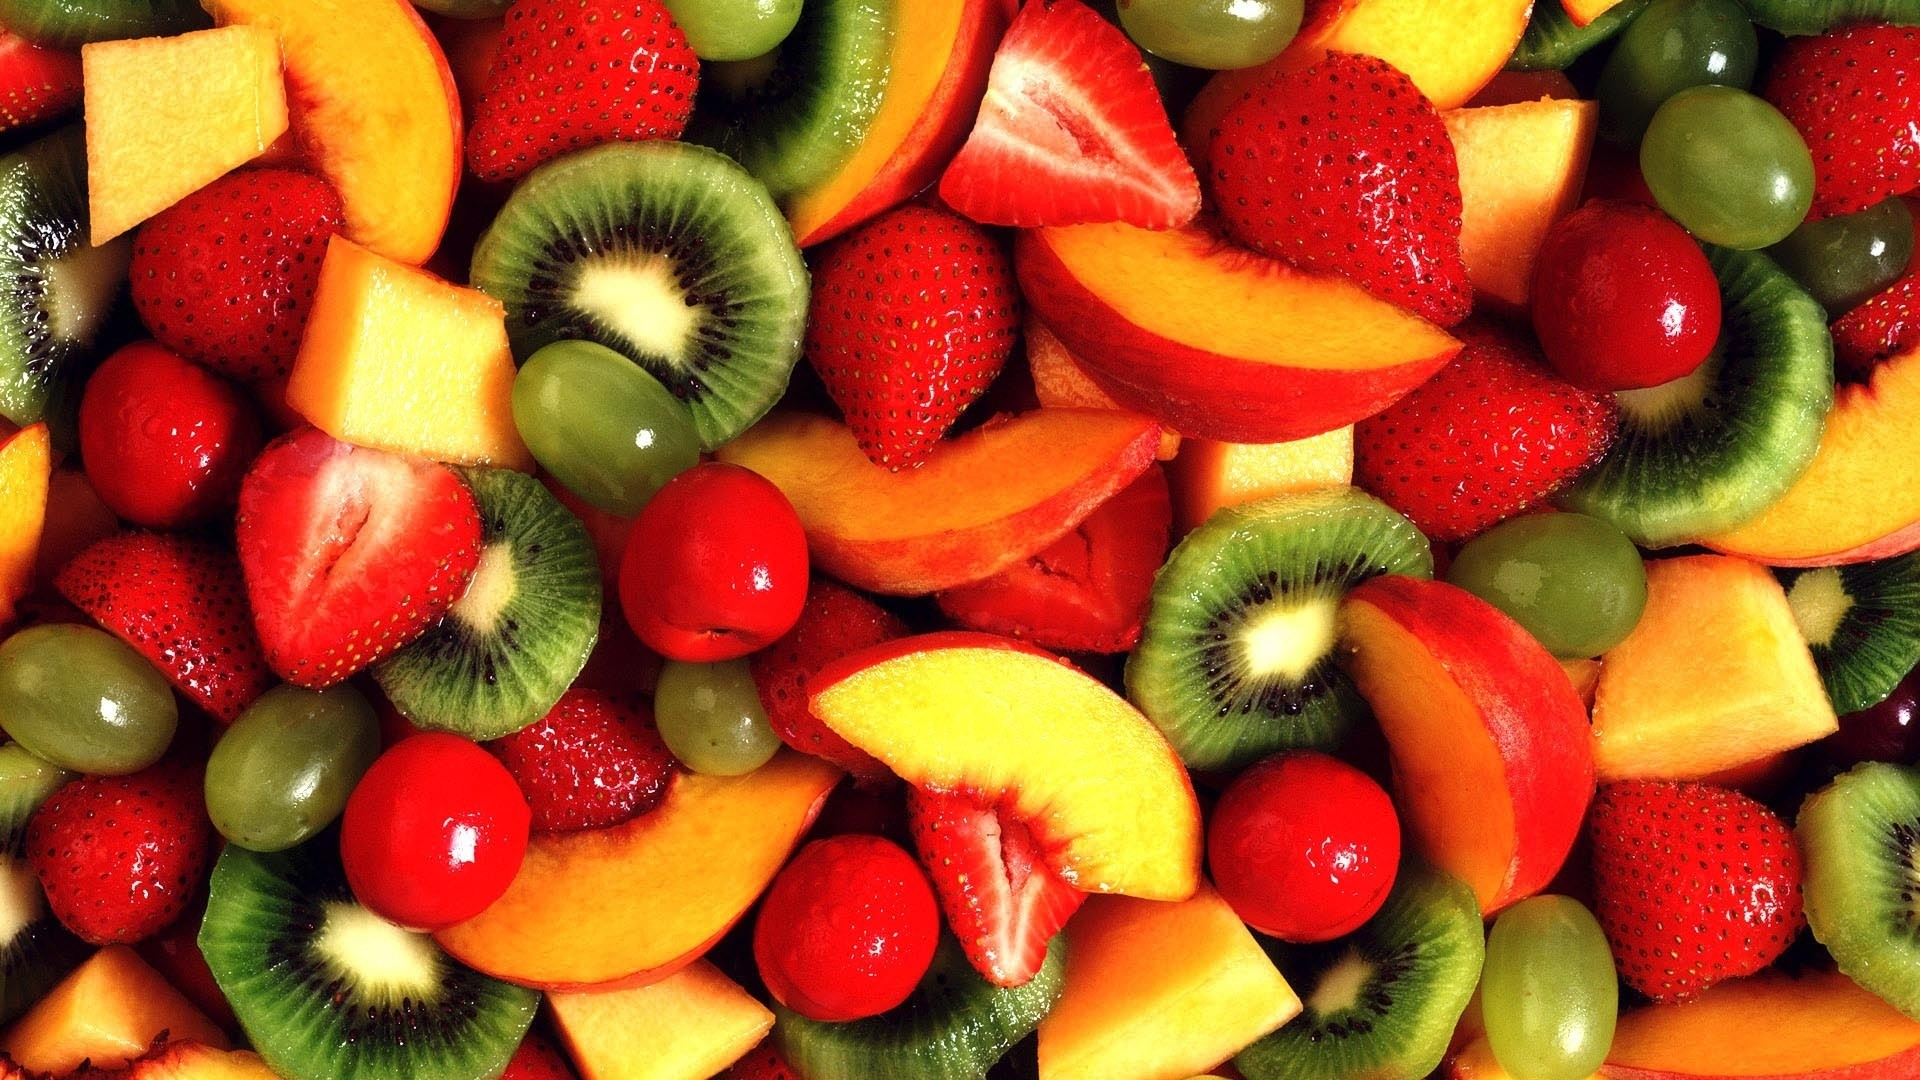 Res: 1920x1080, Fruit Wallpapers 4 - 1920 X 1080